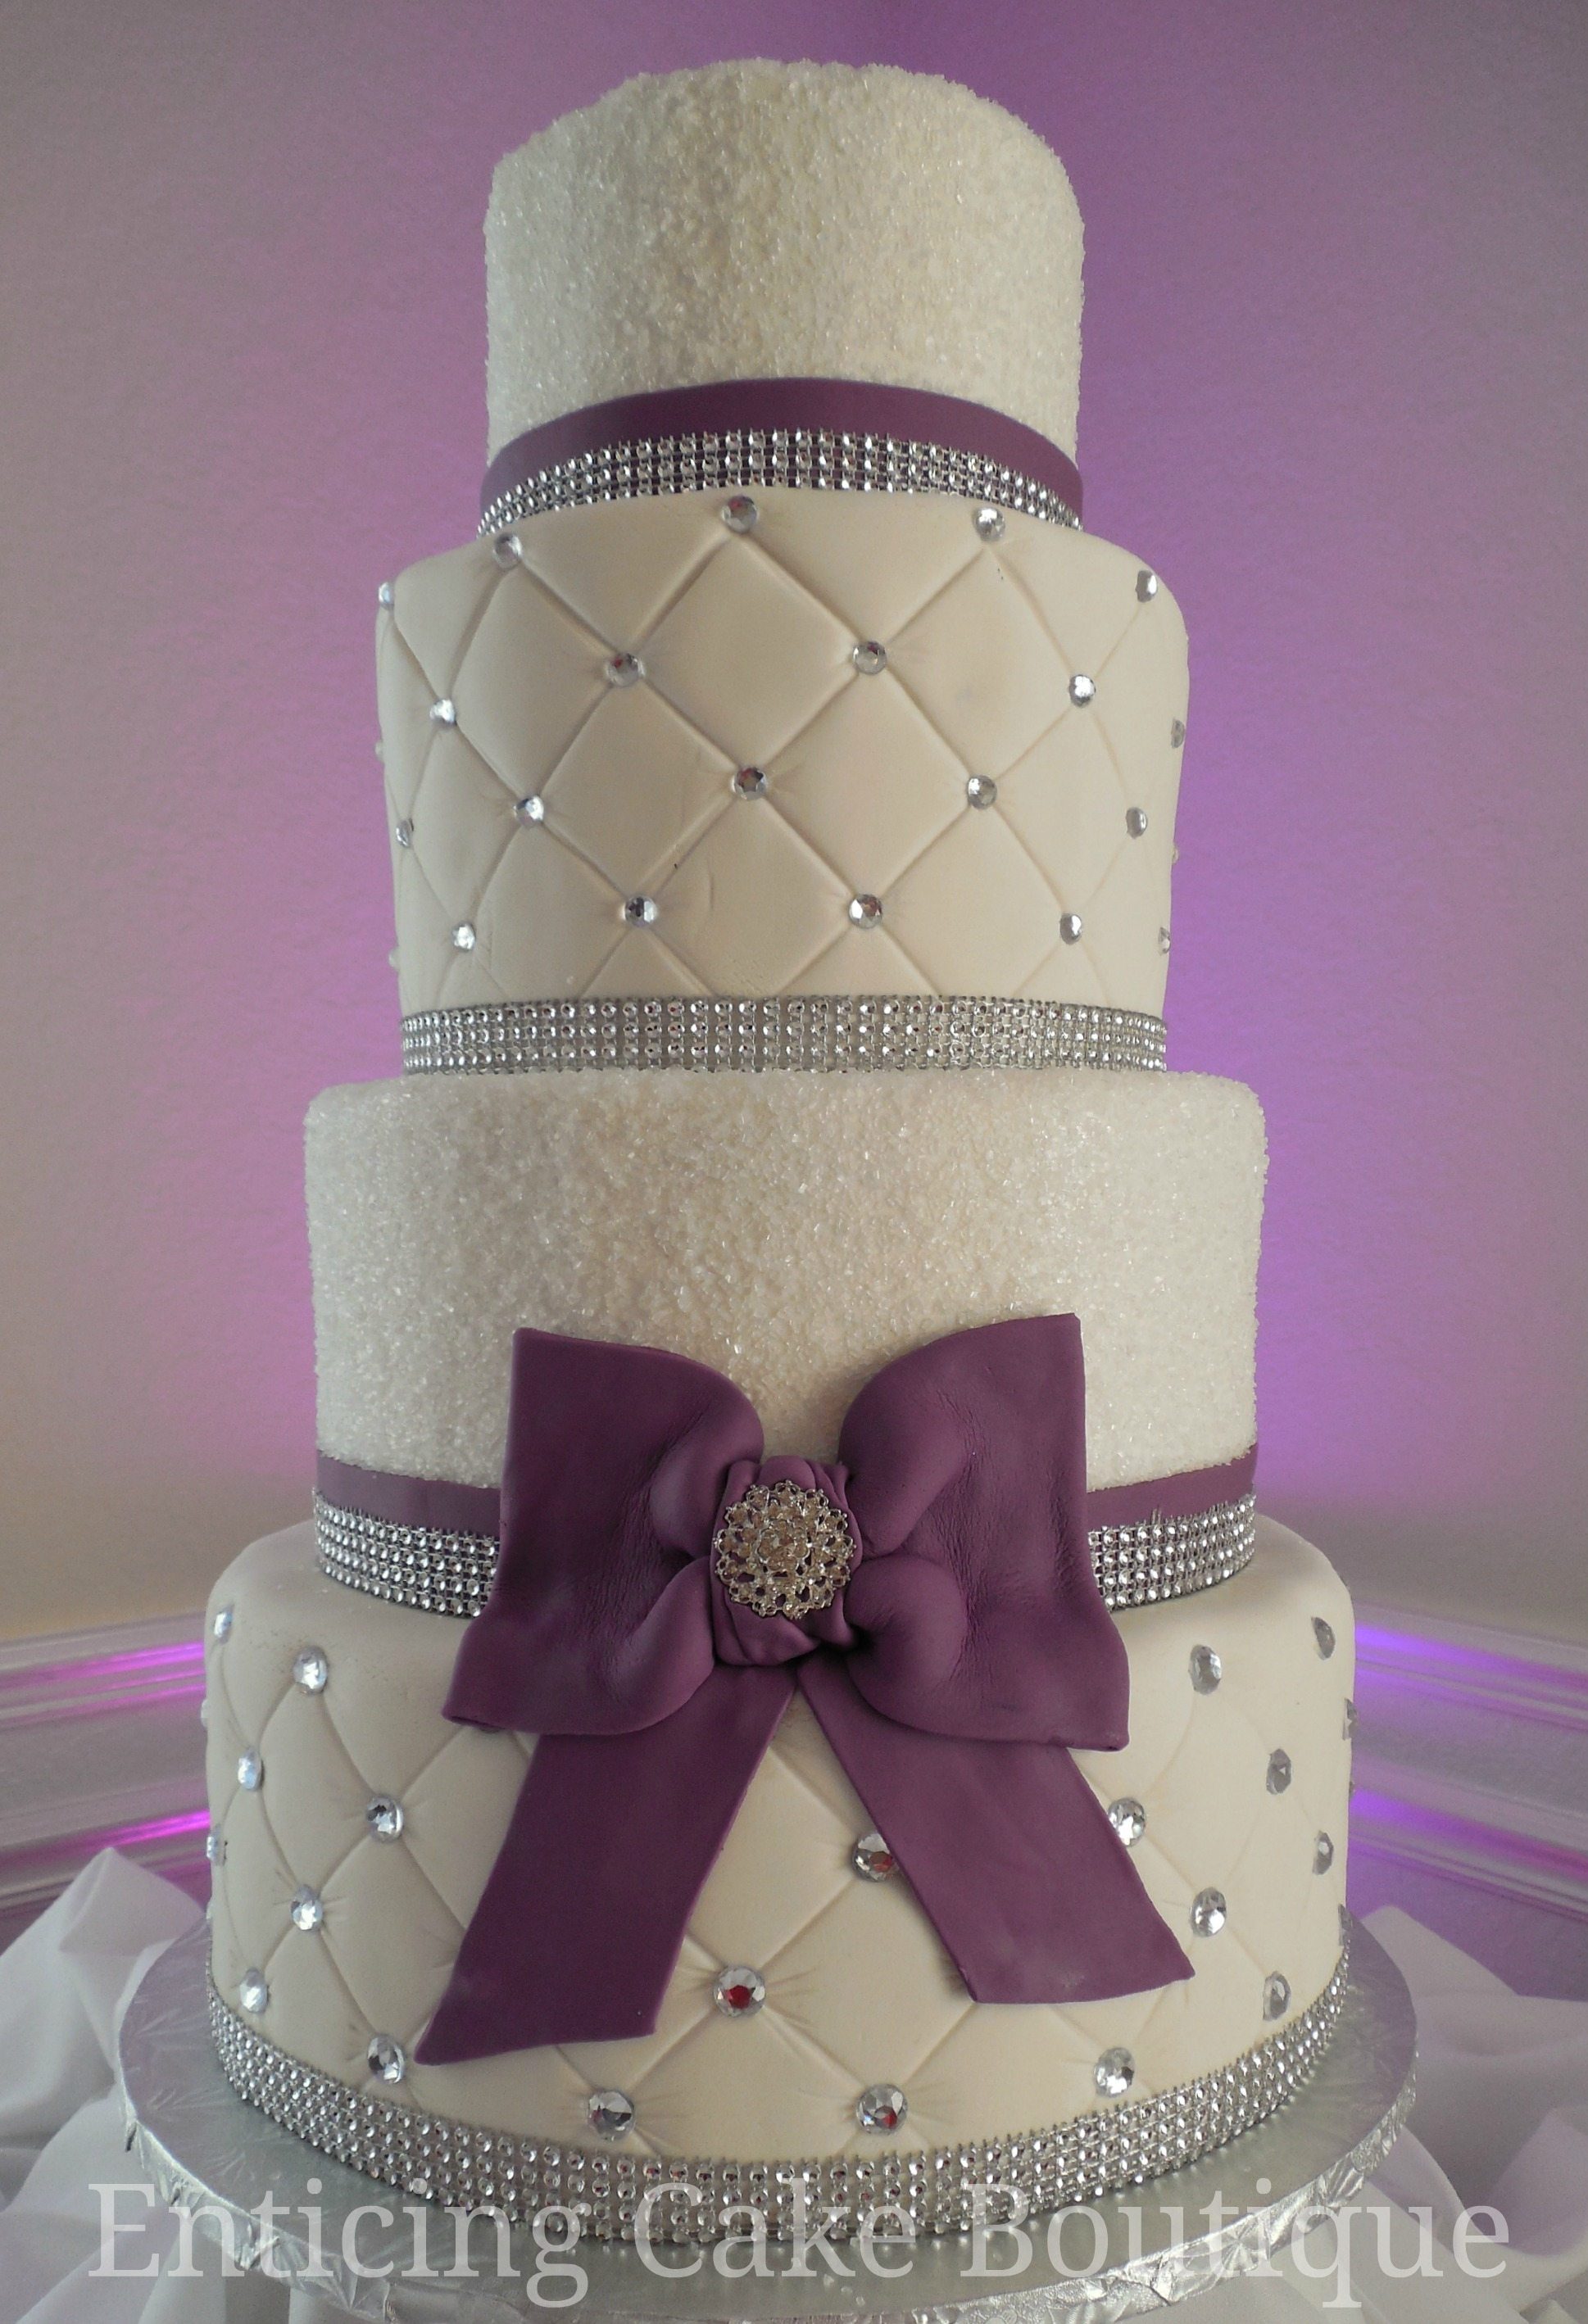 Purple And White Crystal Wedding Cake White quilted fondant with purple accents and bling.